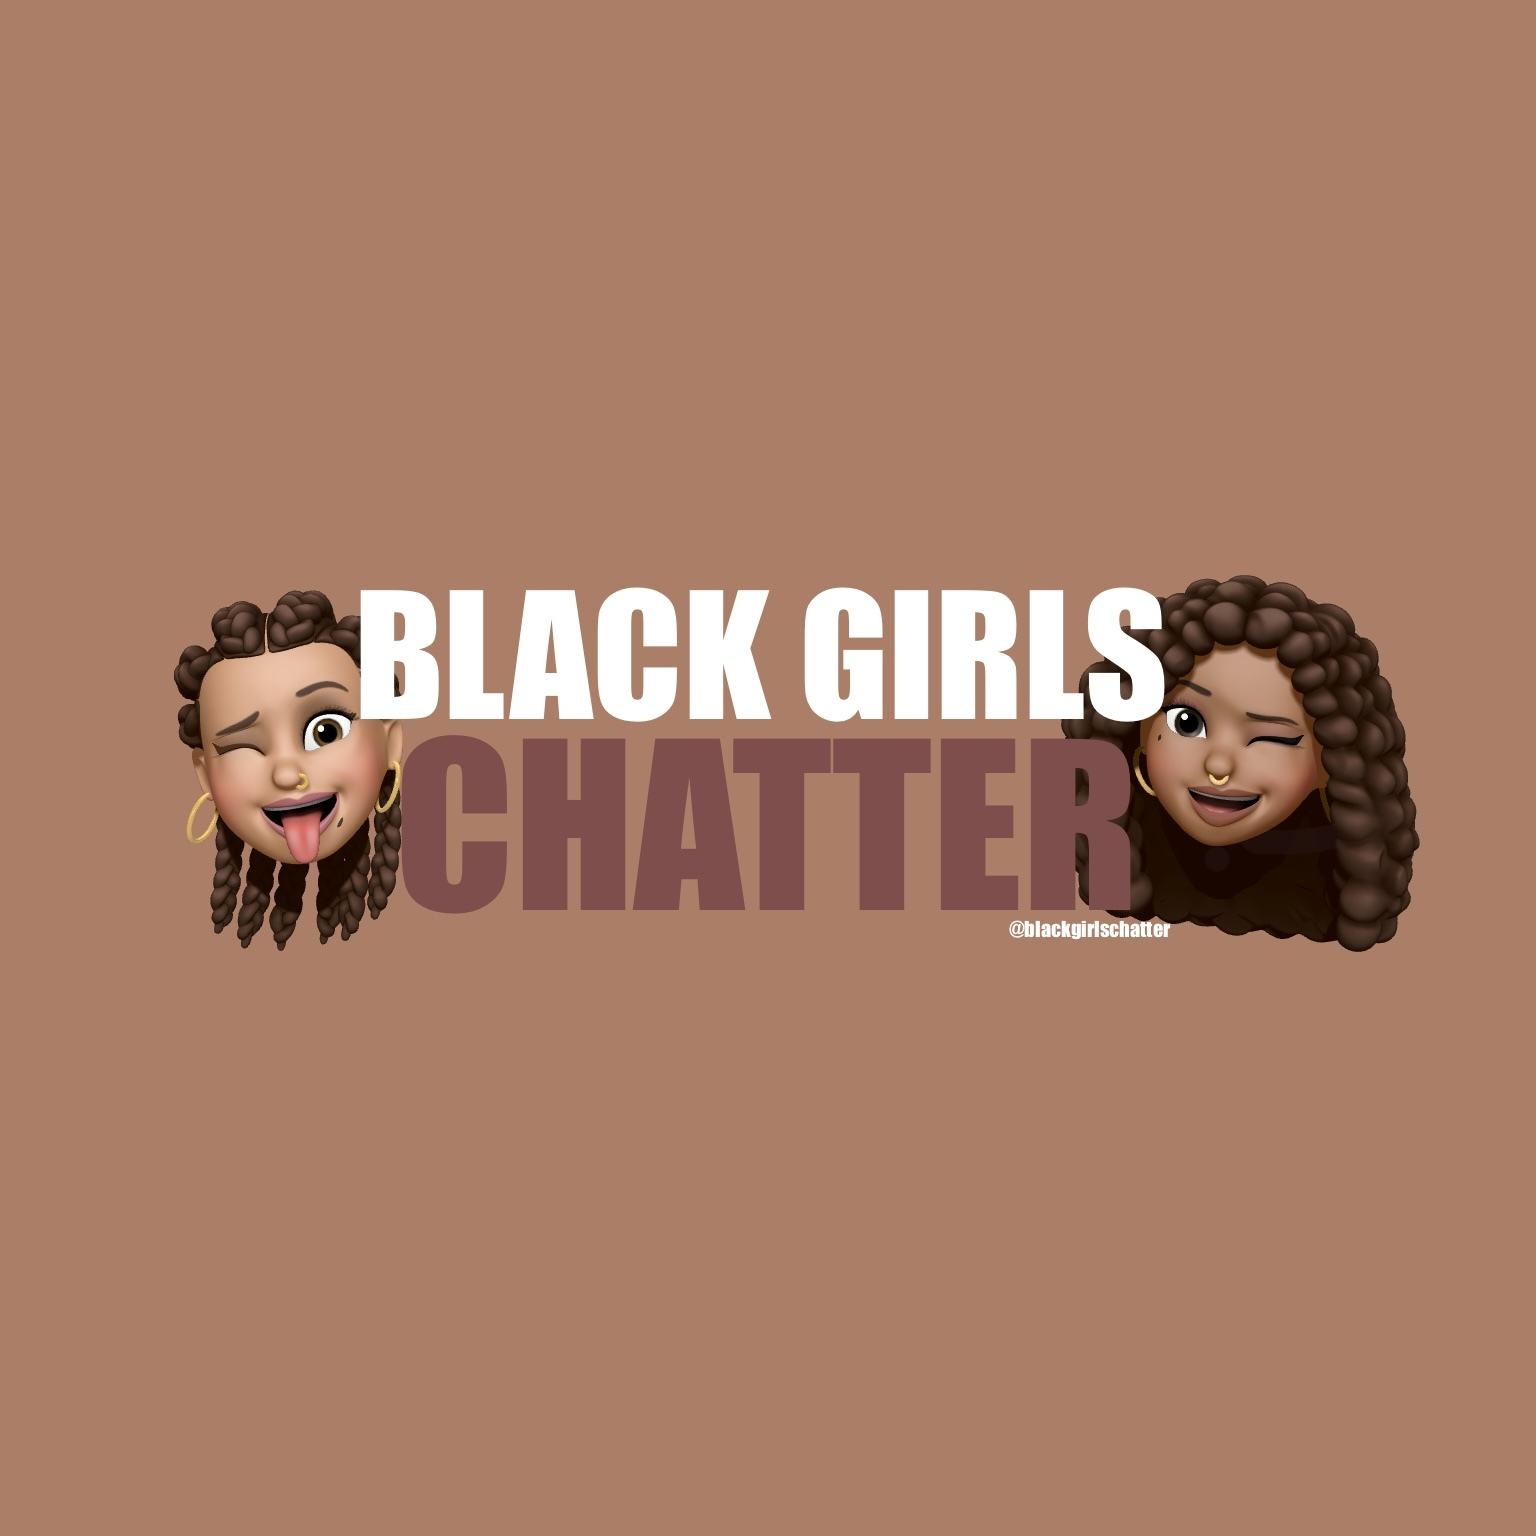 Black Girls Chatter